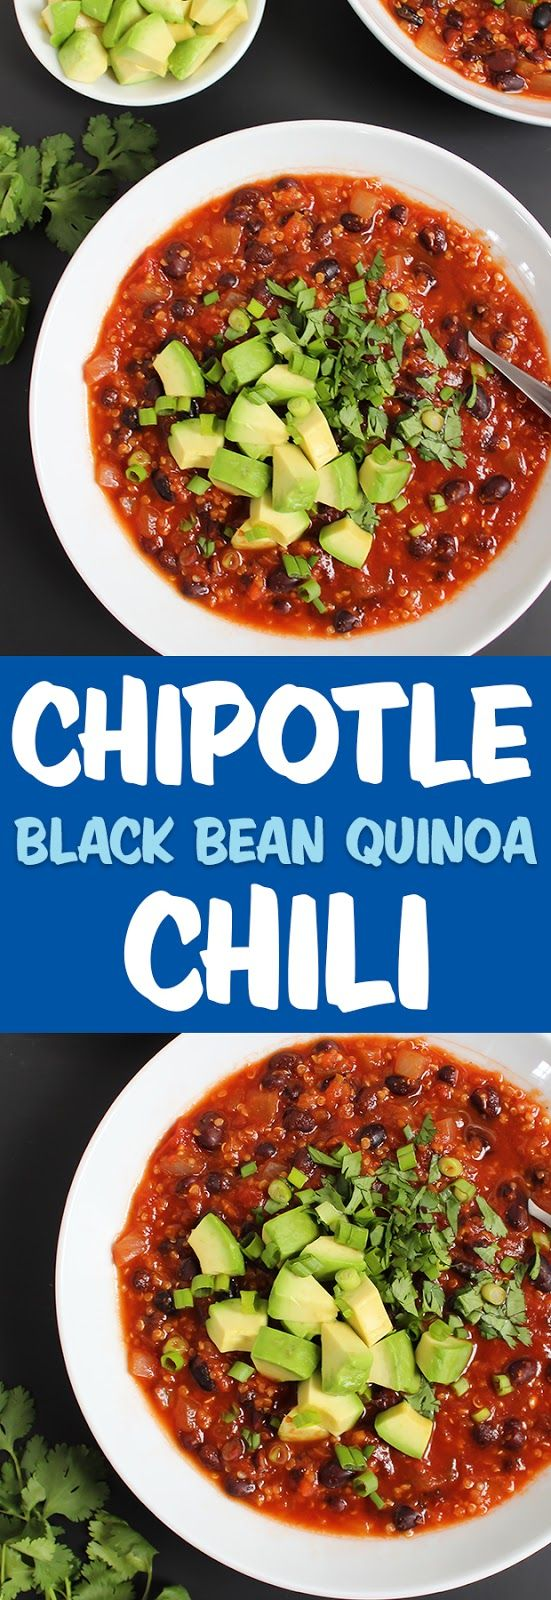 Smoky Chipotle Black Bean Quinoa Chili